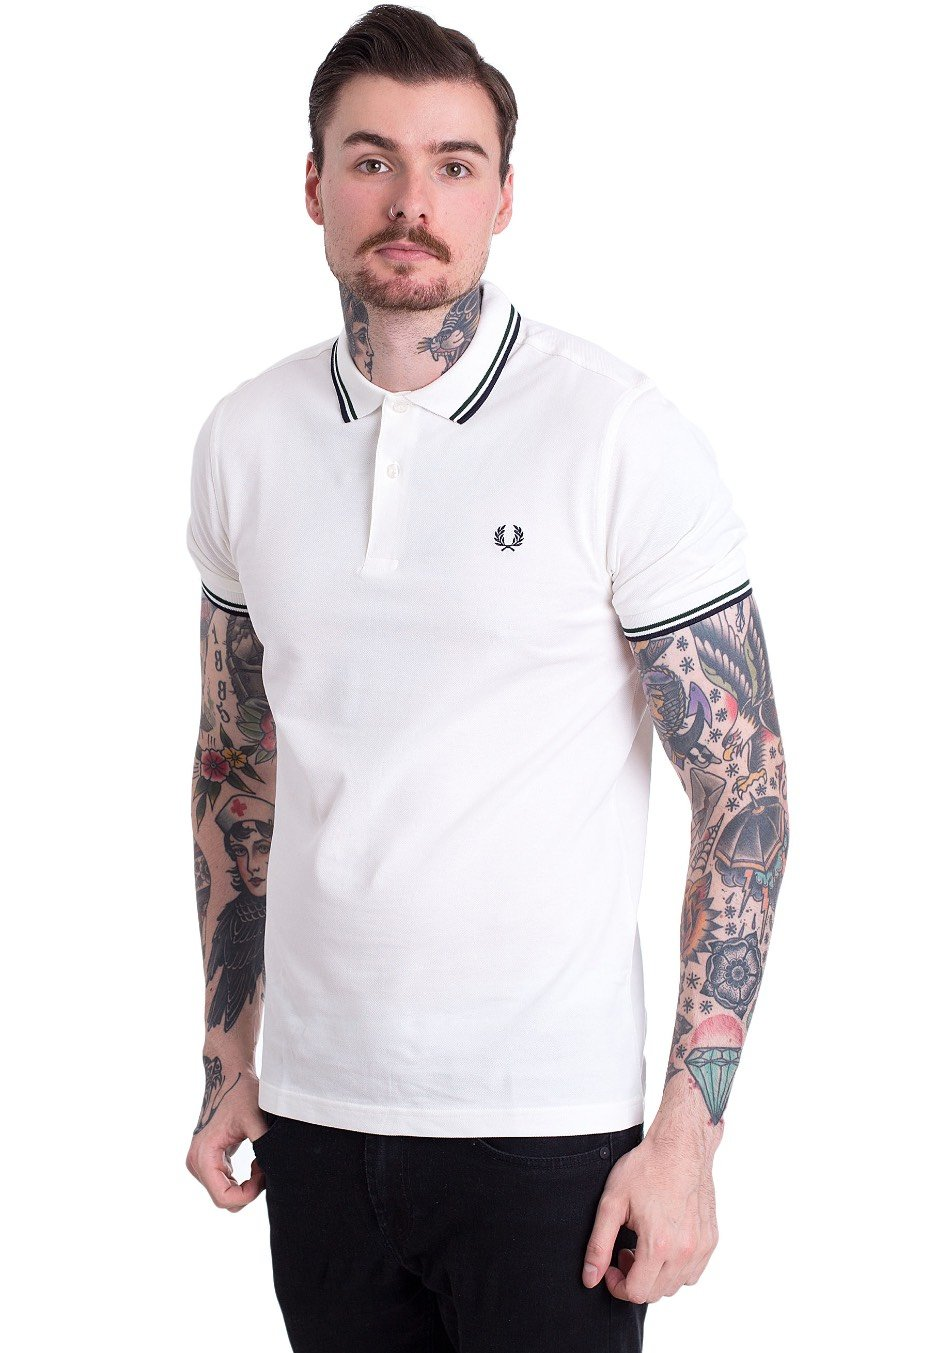 f2bab00d Fred Perry - Twin Tipped Fred Perry Snow White/Ivy/Navy - Polo - Streetwear  Shop - Impericon.com AU